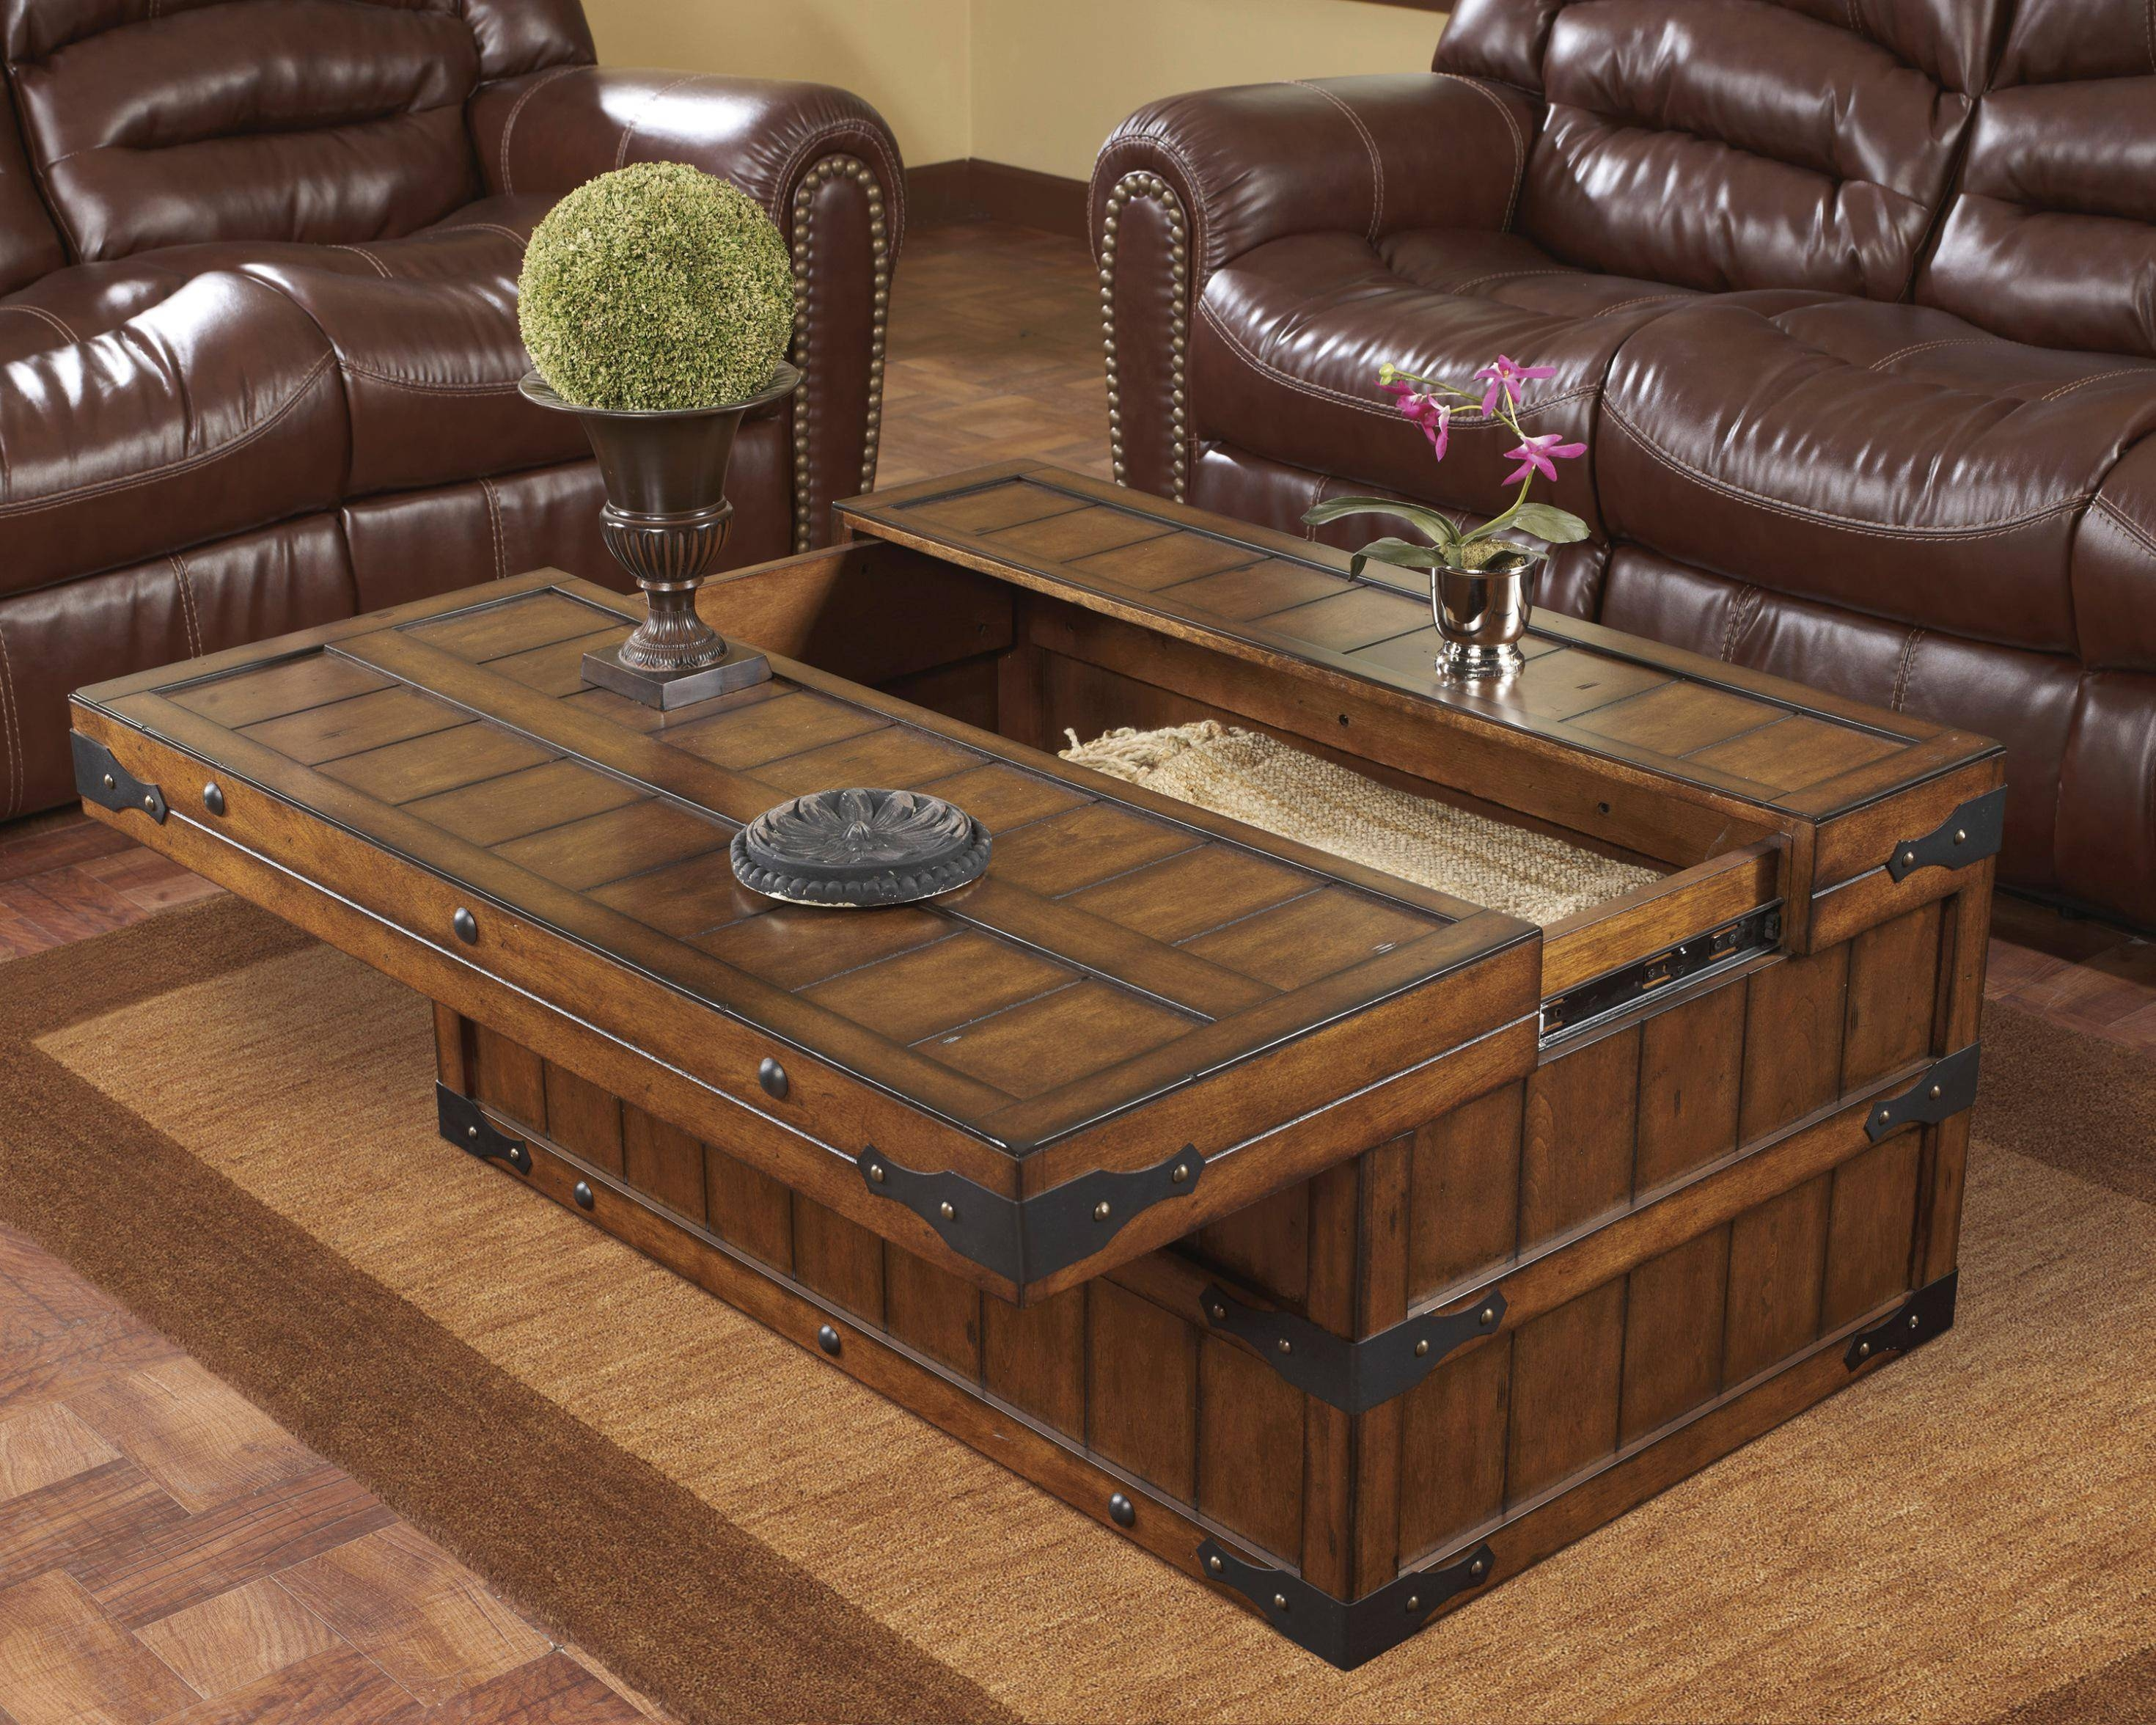 Coffee Table: Brilliant Rustic Trunk Coffee Table Ideas Square intended for Square Chest Coffee Tables (Image 4 of 30)